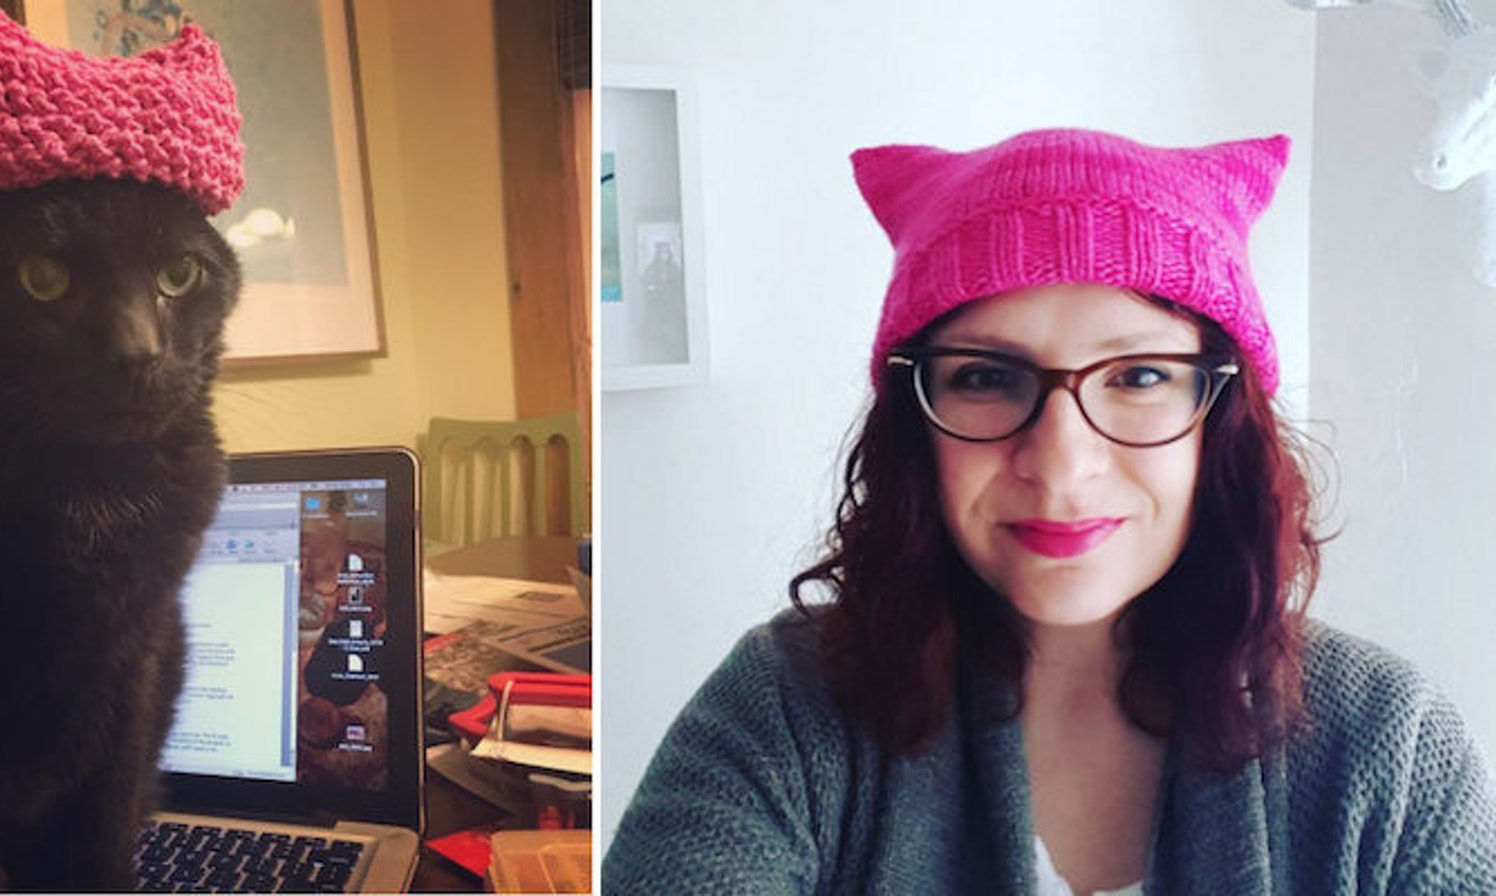 'Pussyhats' Are The Fashion Choice Of Women's March On DC